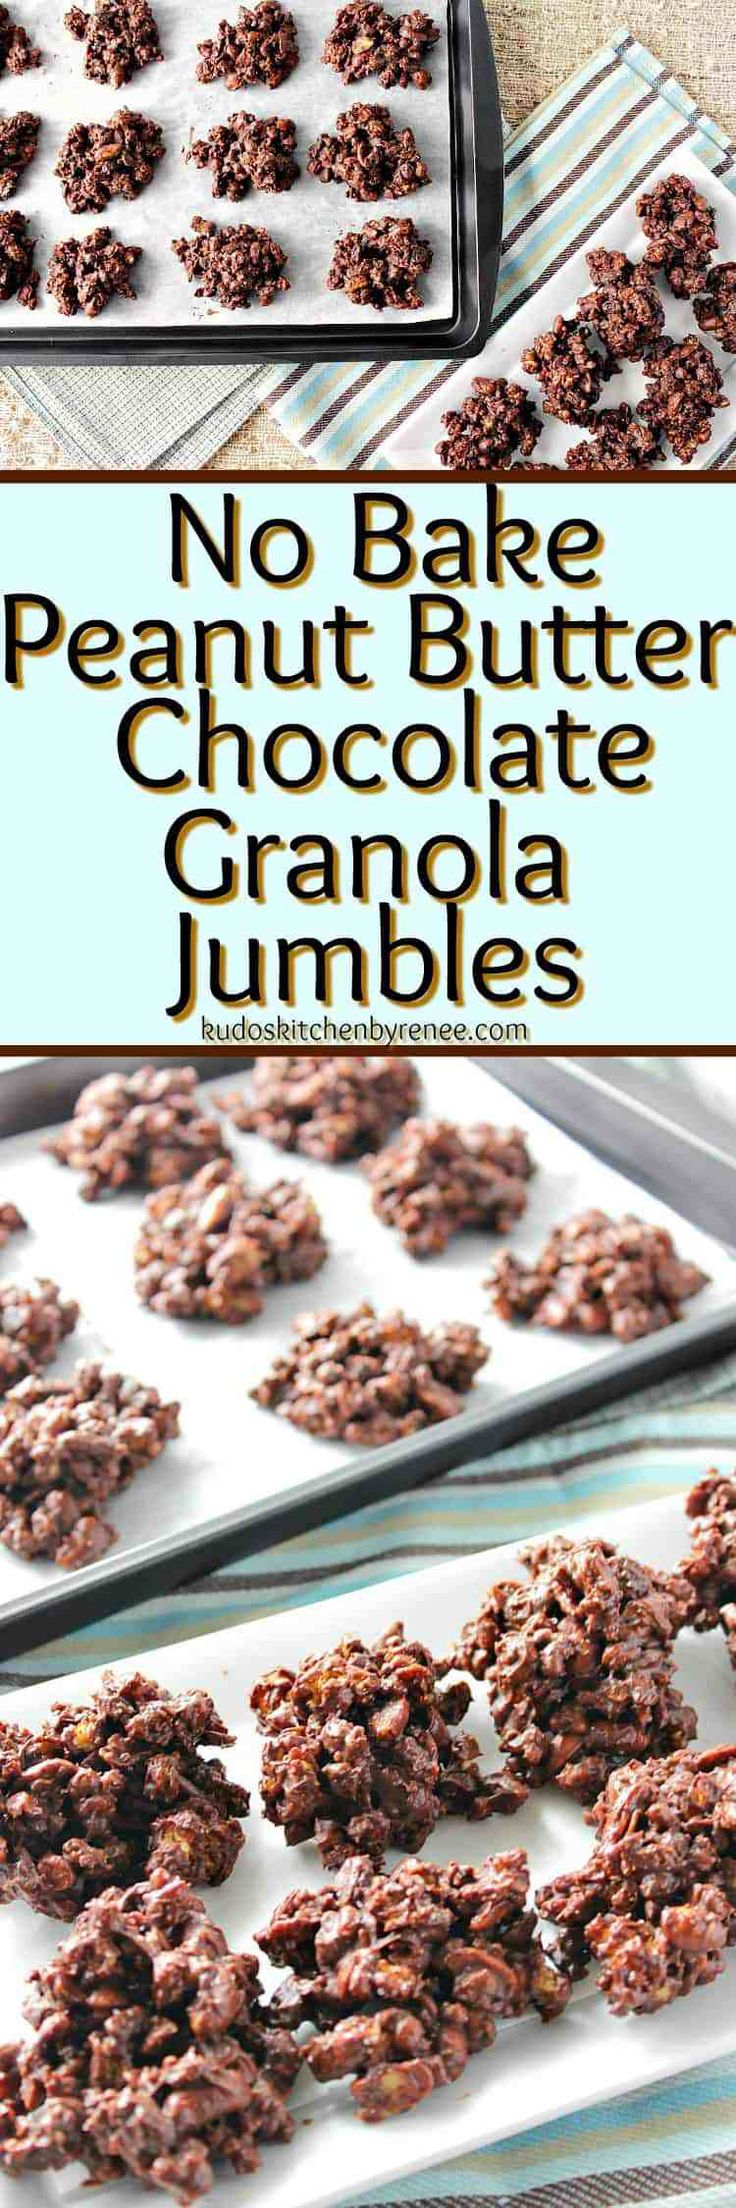 No Bake Peanut Butter & Chocolate Granola Jumbles Candy Recipe - Kudos Kitchen by Renee #peanutbutterchocolate #candy #chocolatecandy #chocolate #nobake #peanutbutter #granola #raisins #peanuts #glutenfreedessert